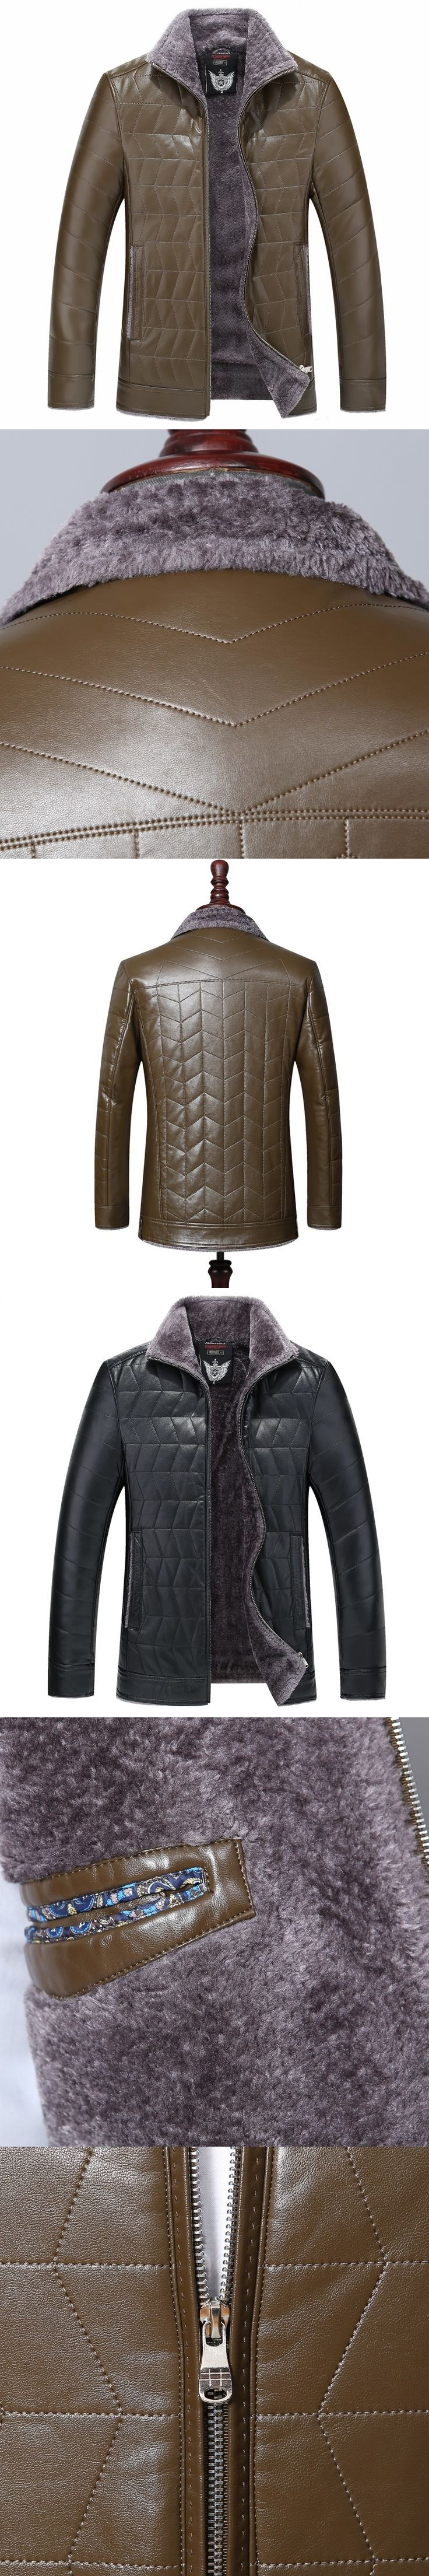 2017 new Winter Leather Jacket for Men Fashion Brand Brown Sheepskin Jackets and Coats with Wool Lining New Arrival